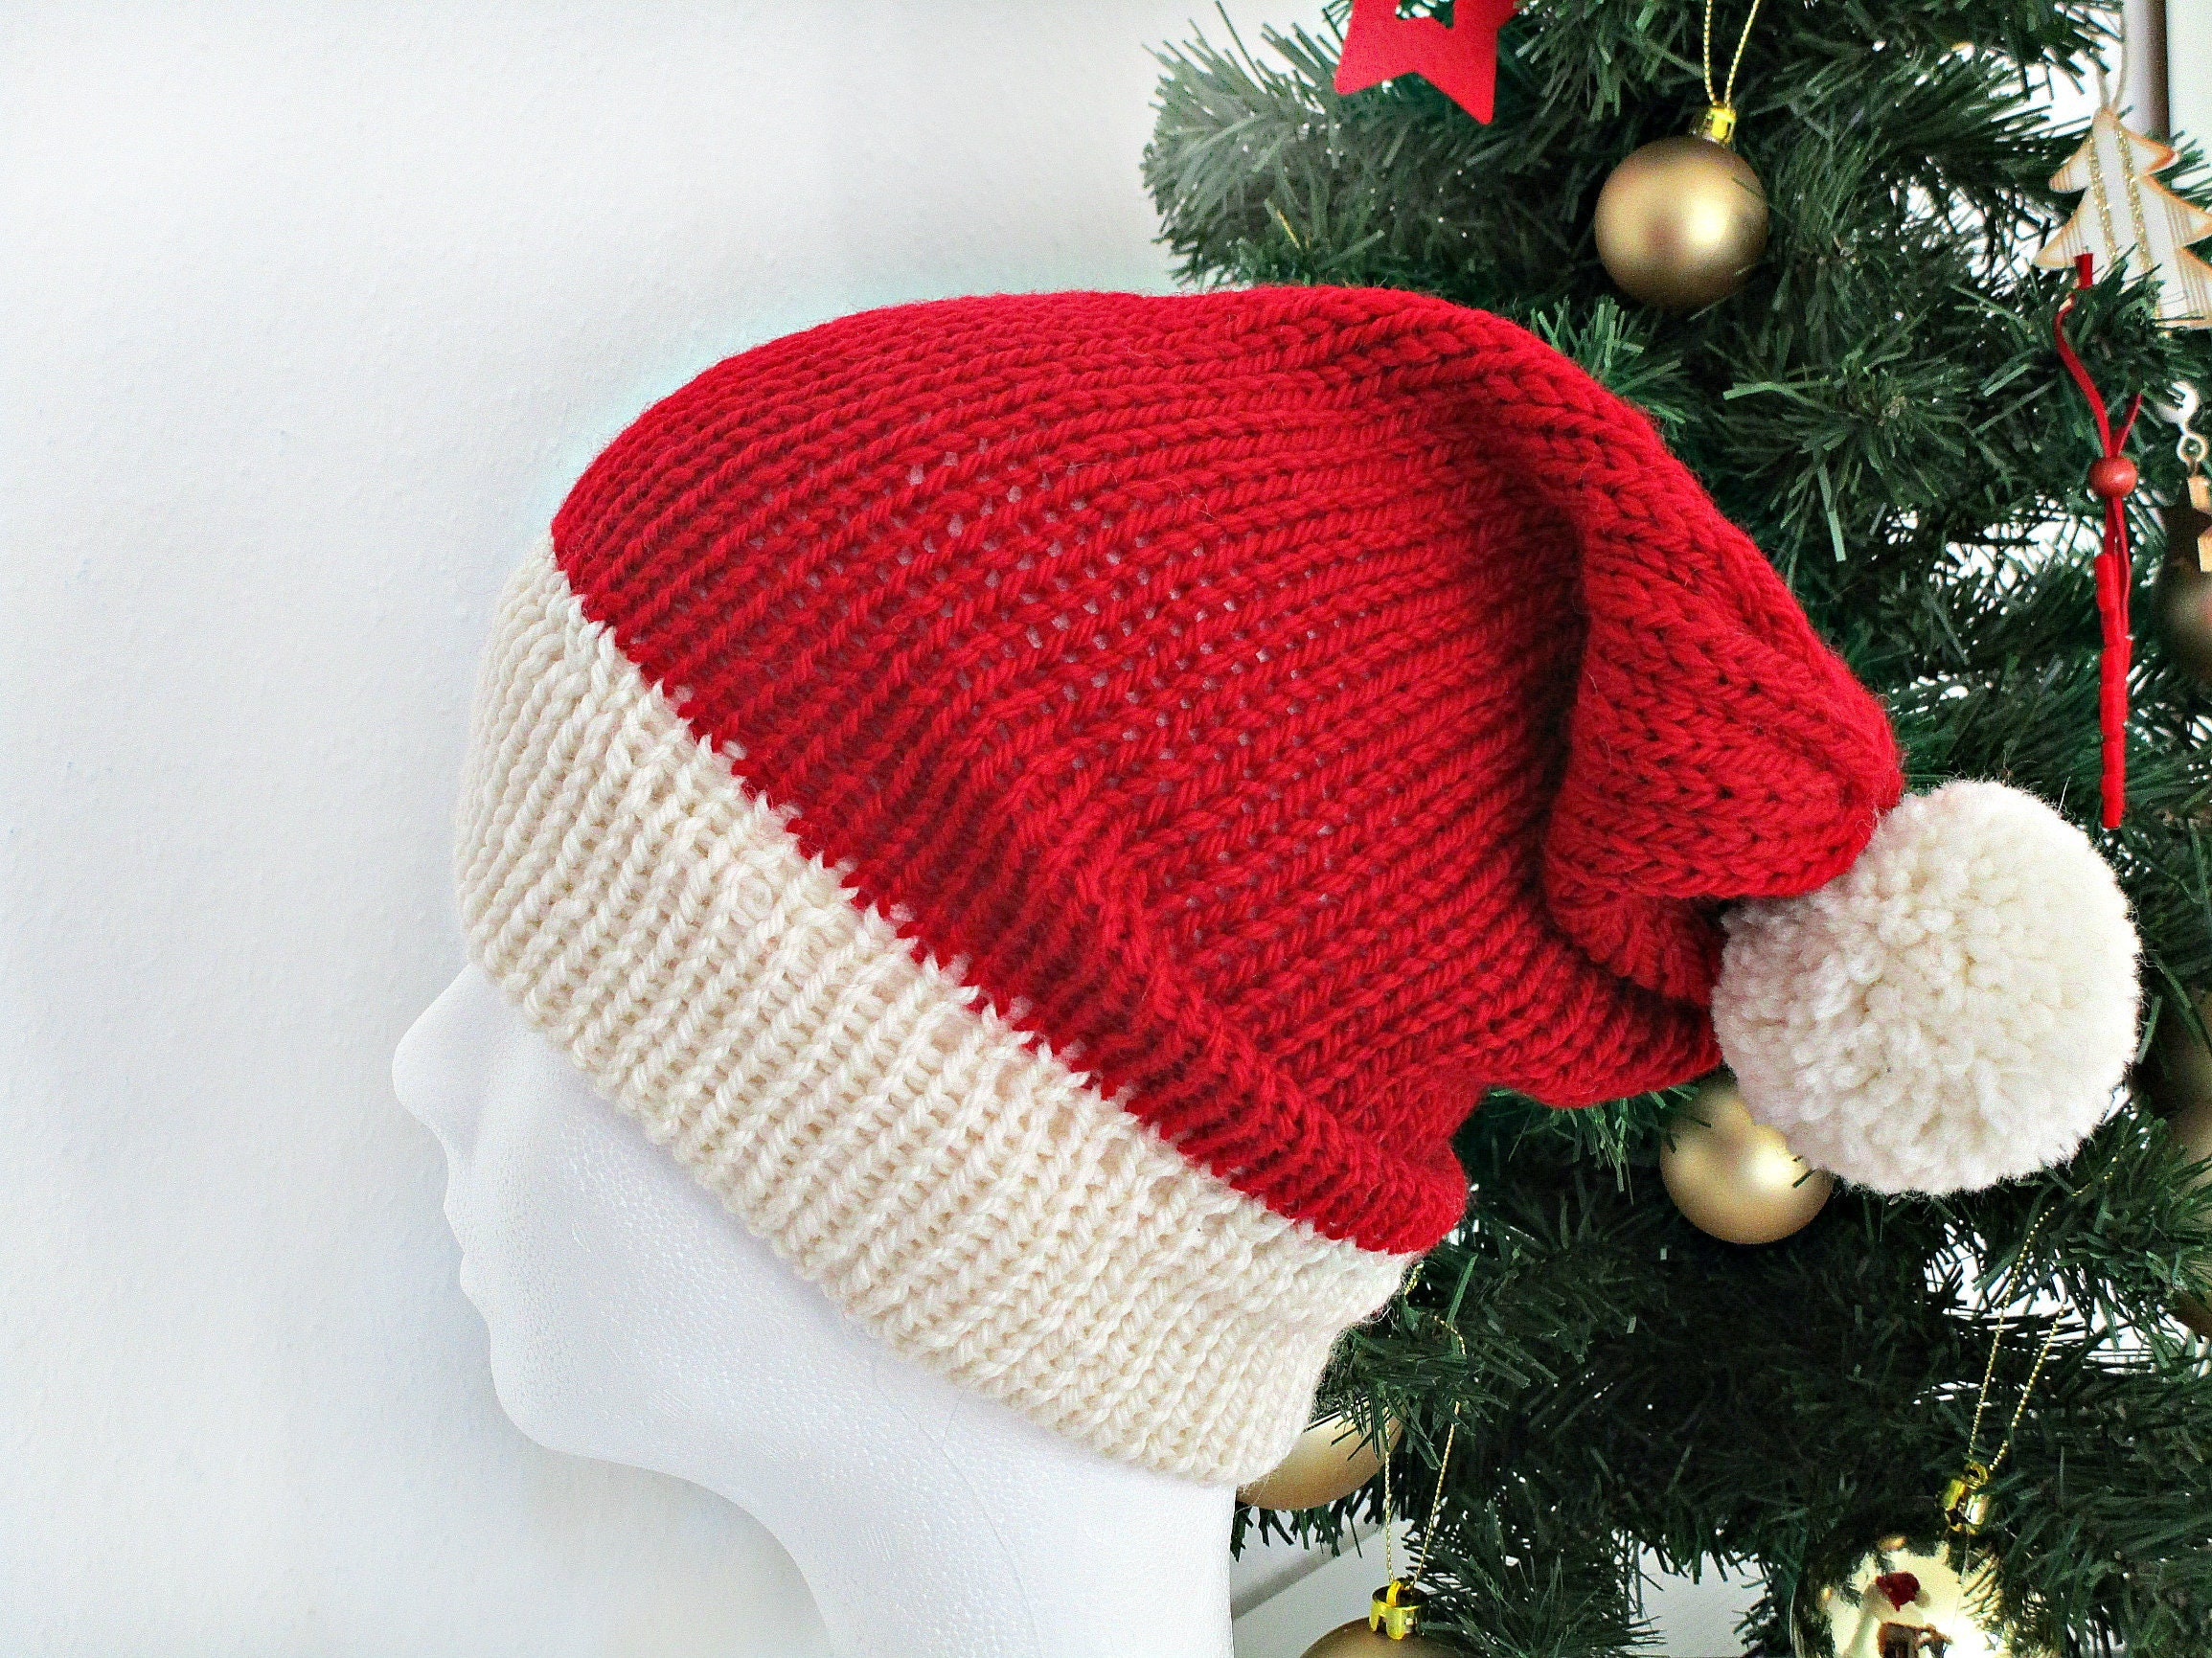 Knit christmas hat Knit Santa hat Red christmas hat photo prop  47cfd08e4f6d